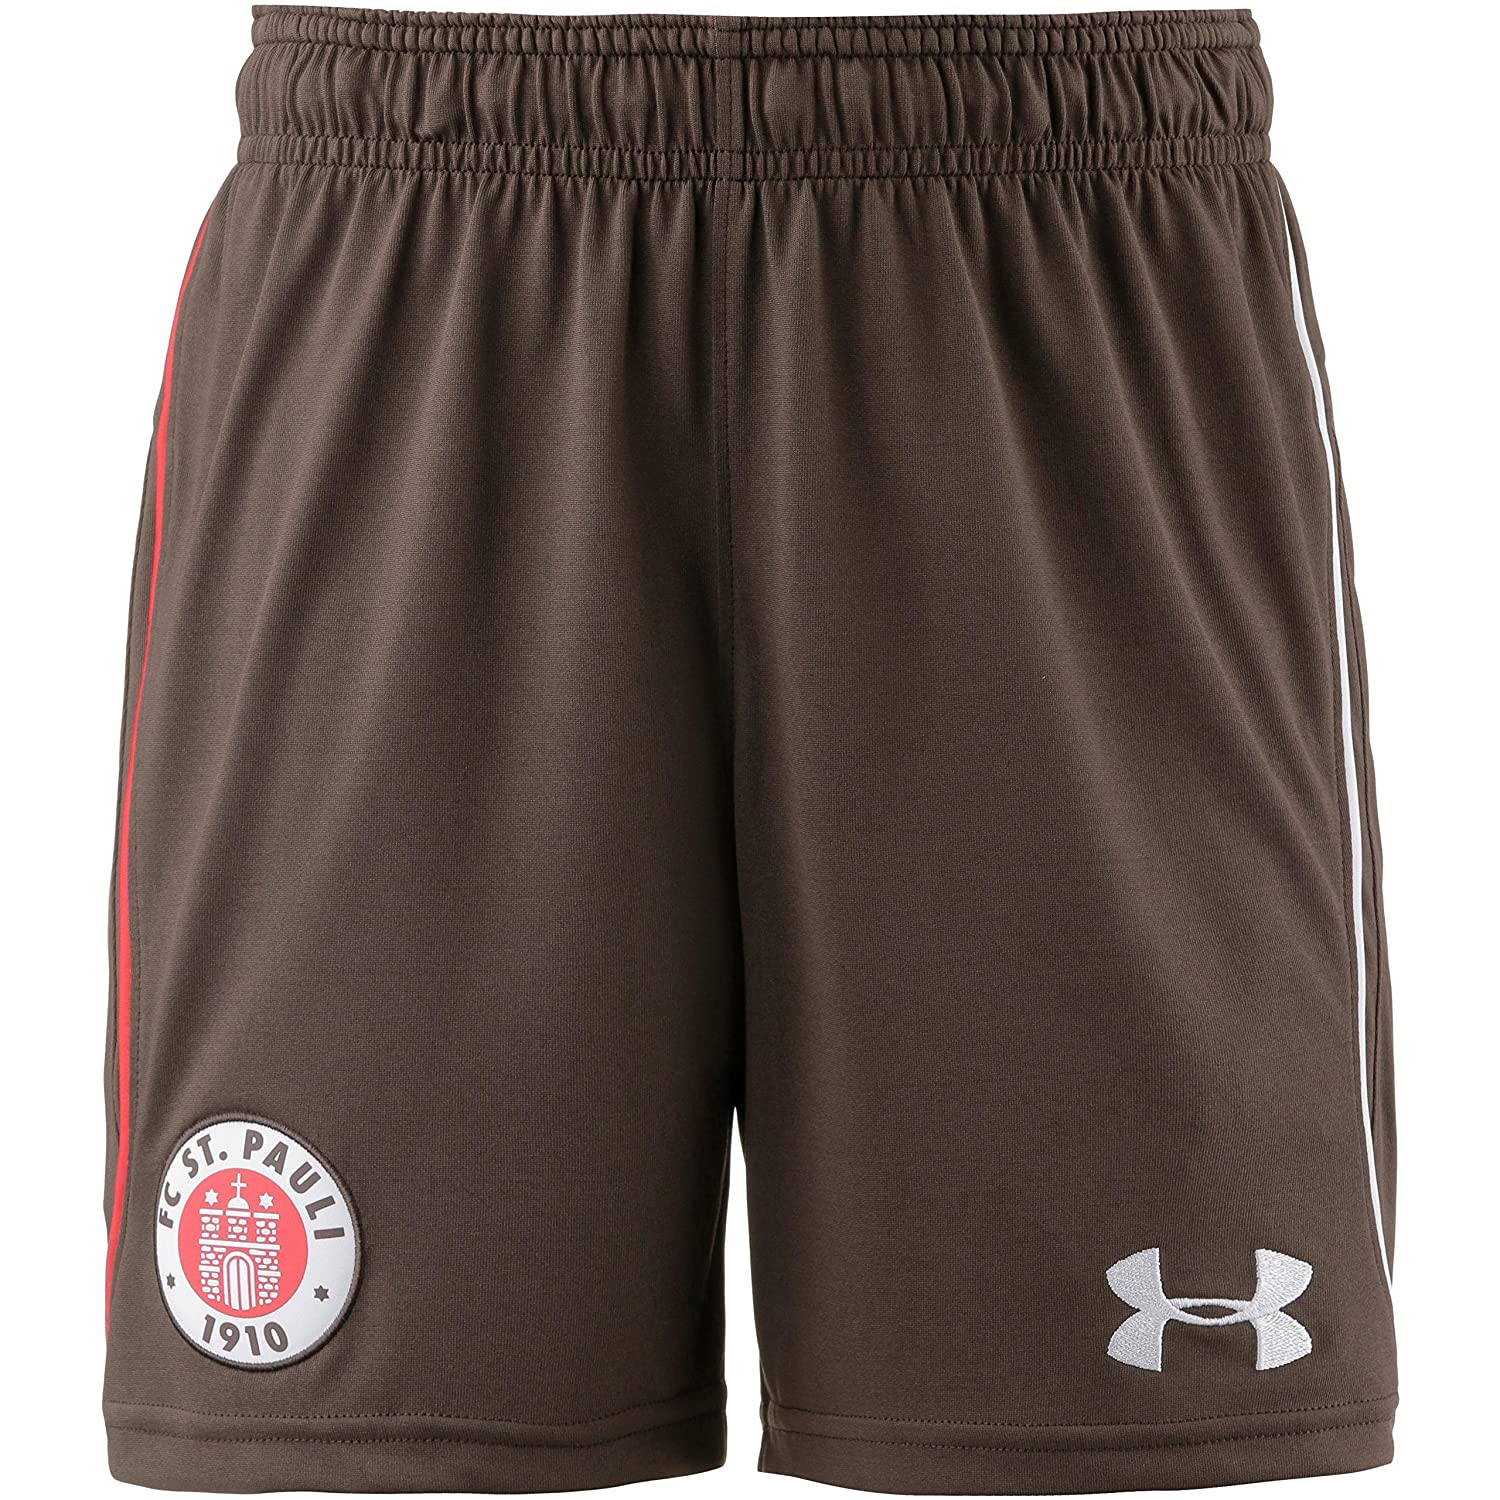 Under Armour Fcsp Y Rep Short, Pantaloncino Bambino